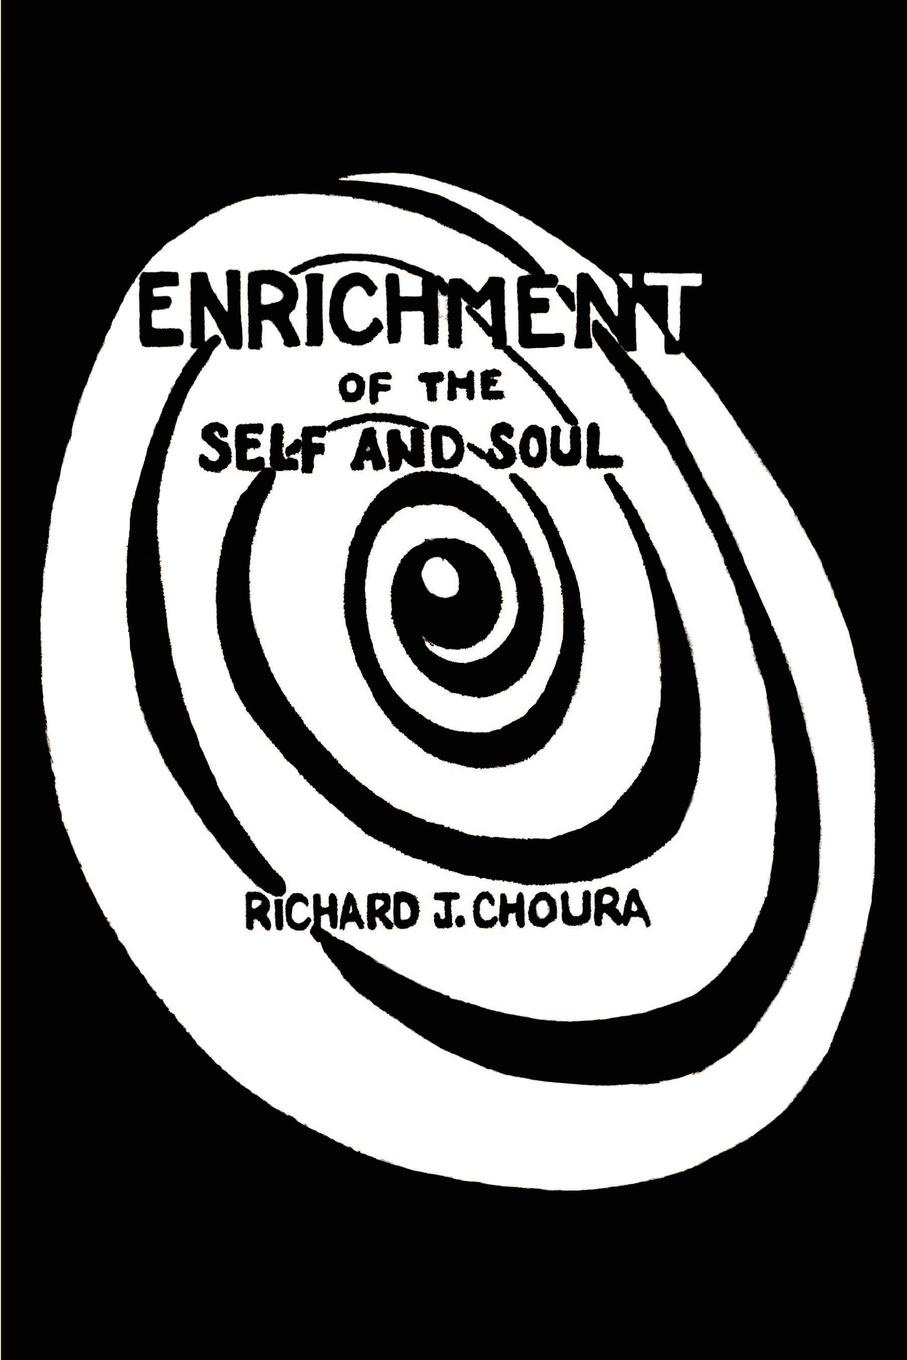 Richard J. Choura Enrichment of the Self and Soul william blake on self and soul